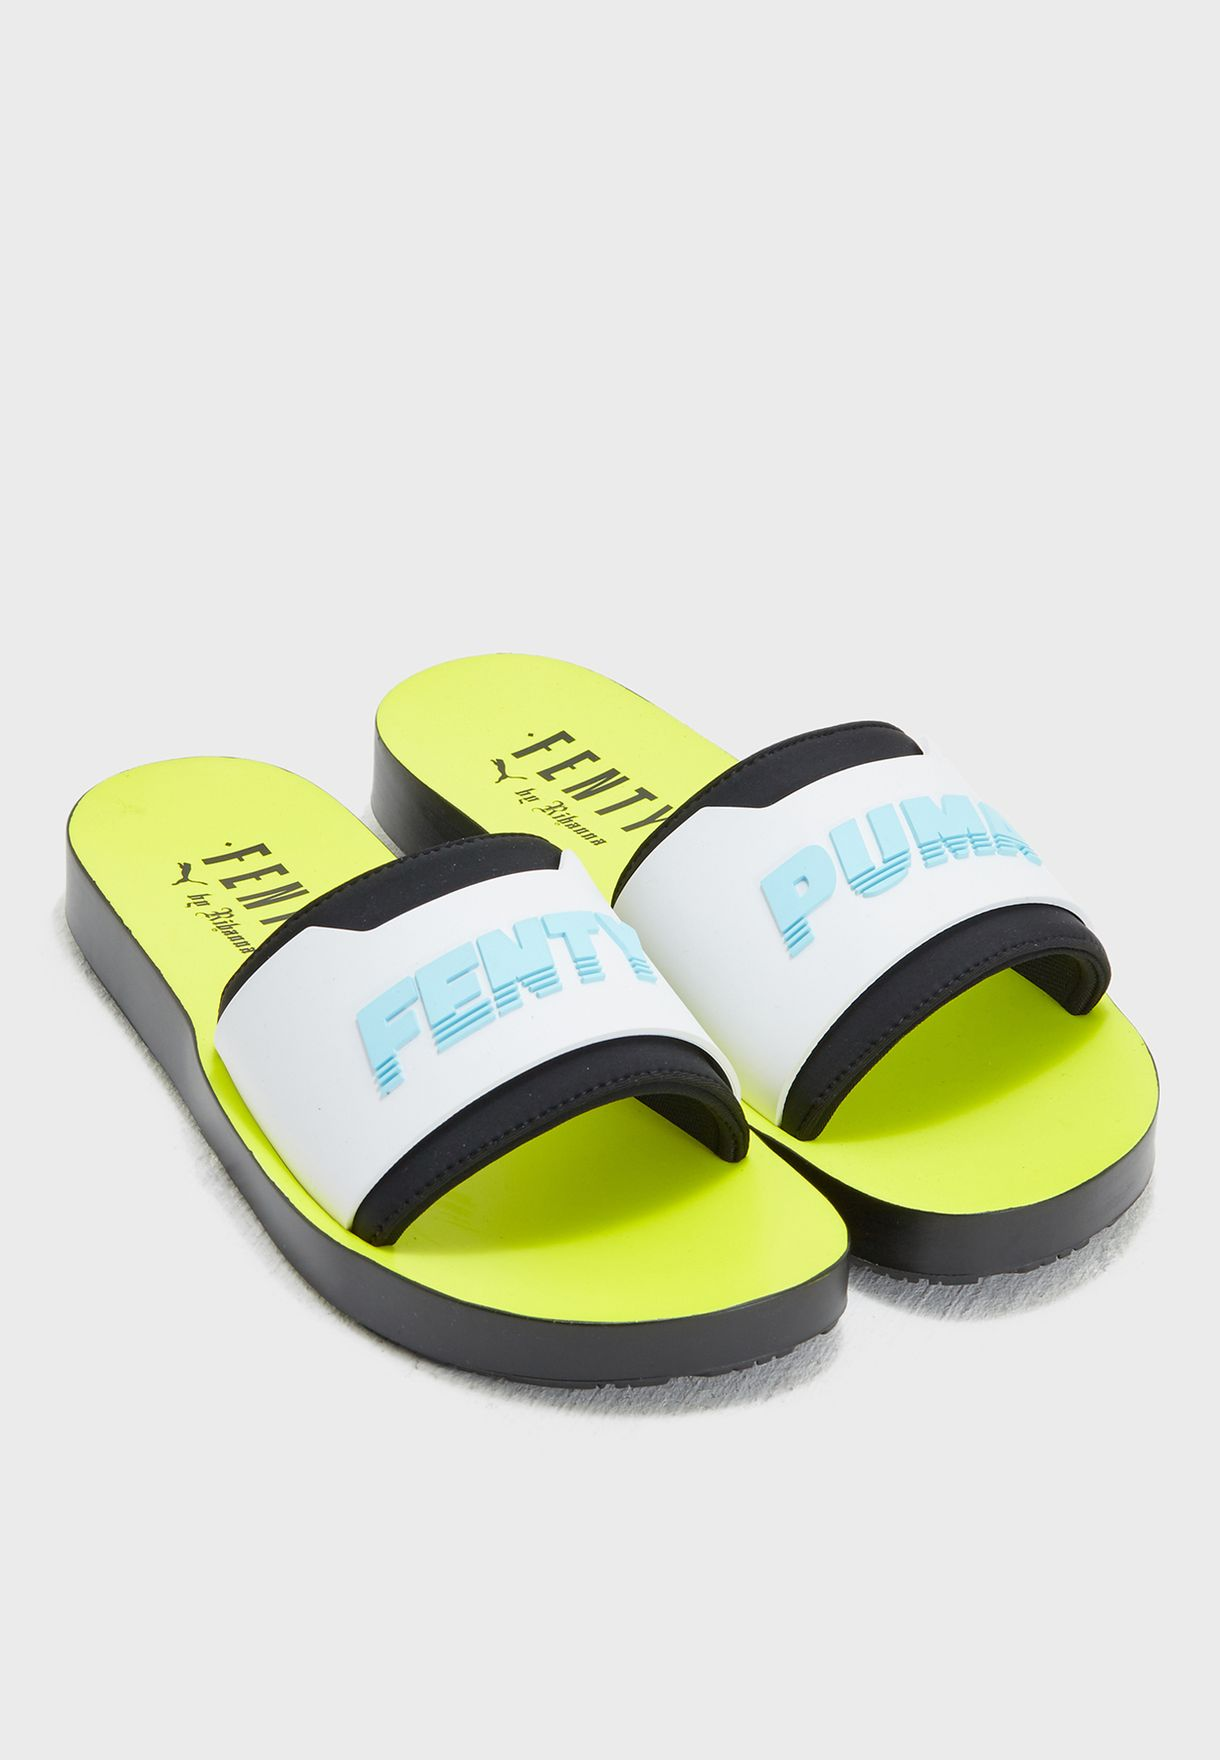 e6d508cf5d5d96 Shop PUMA x Fenty white Surf Slide 36774702 for Women in UAE ...